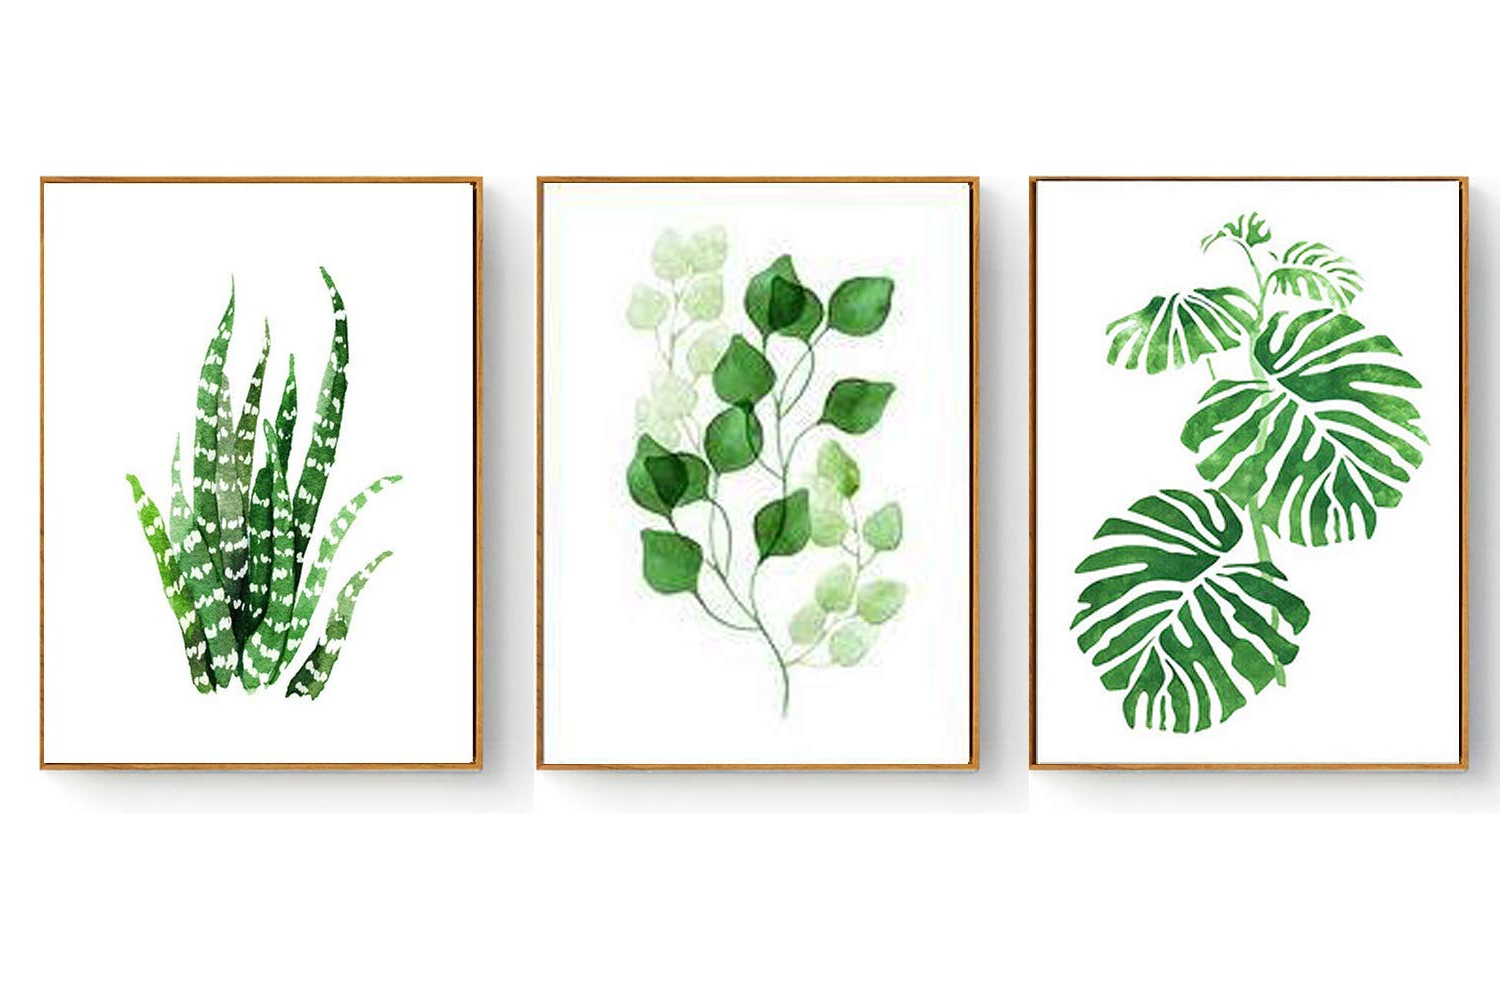 3 Piece Ceramic Flowers Wall Decor Sets With Regard To 2019 Amazon: Hepix Canvas Wall Art Succulent Wall Decor 3 Pieces (Gallery 15 of 20)